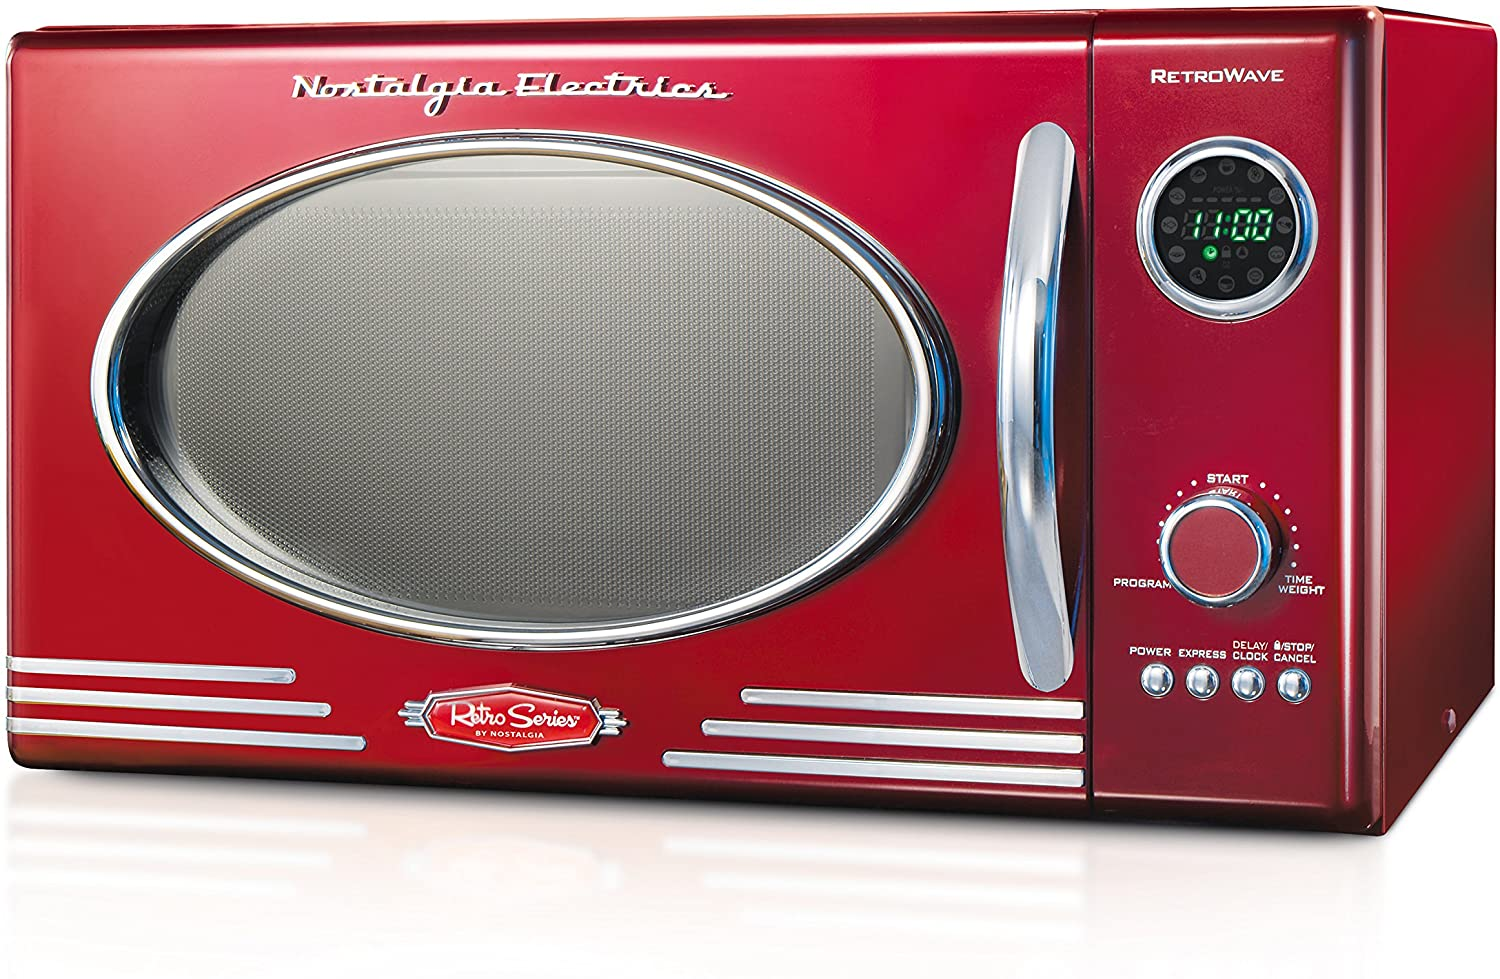 Nostalgia RMO400RED Retro 0.9 Cubic Foot Microwave Review